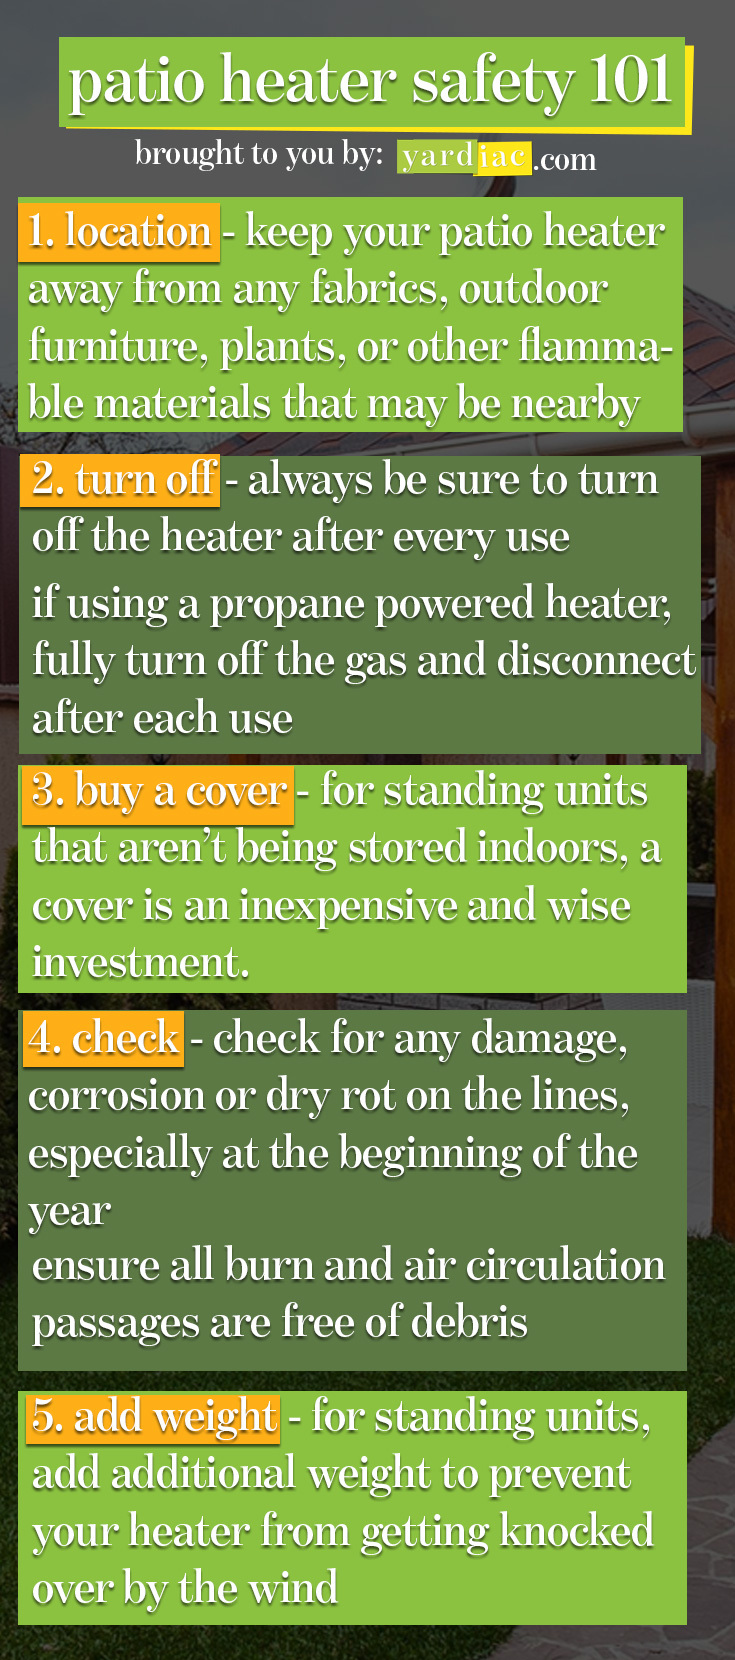 Best Outdoor Patio Heater Safety Tips